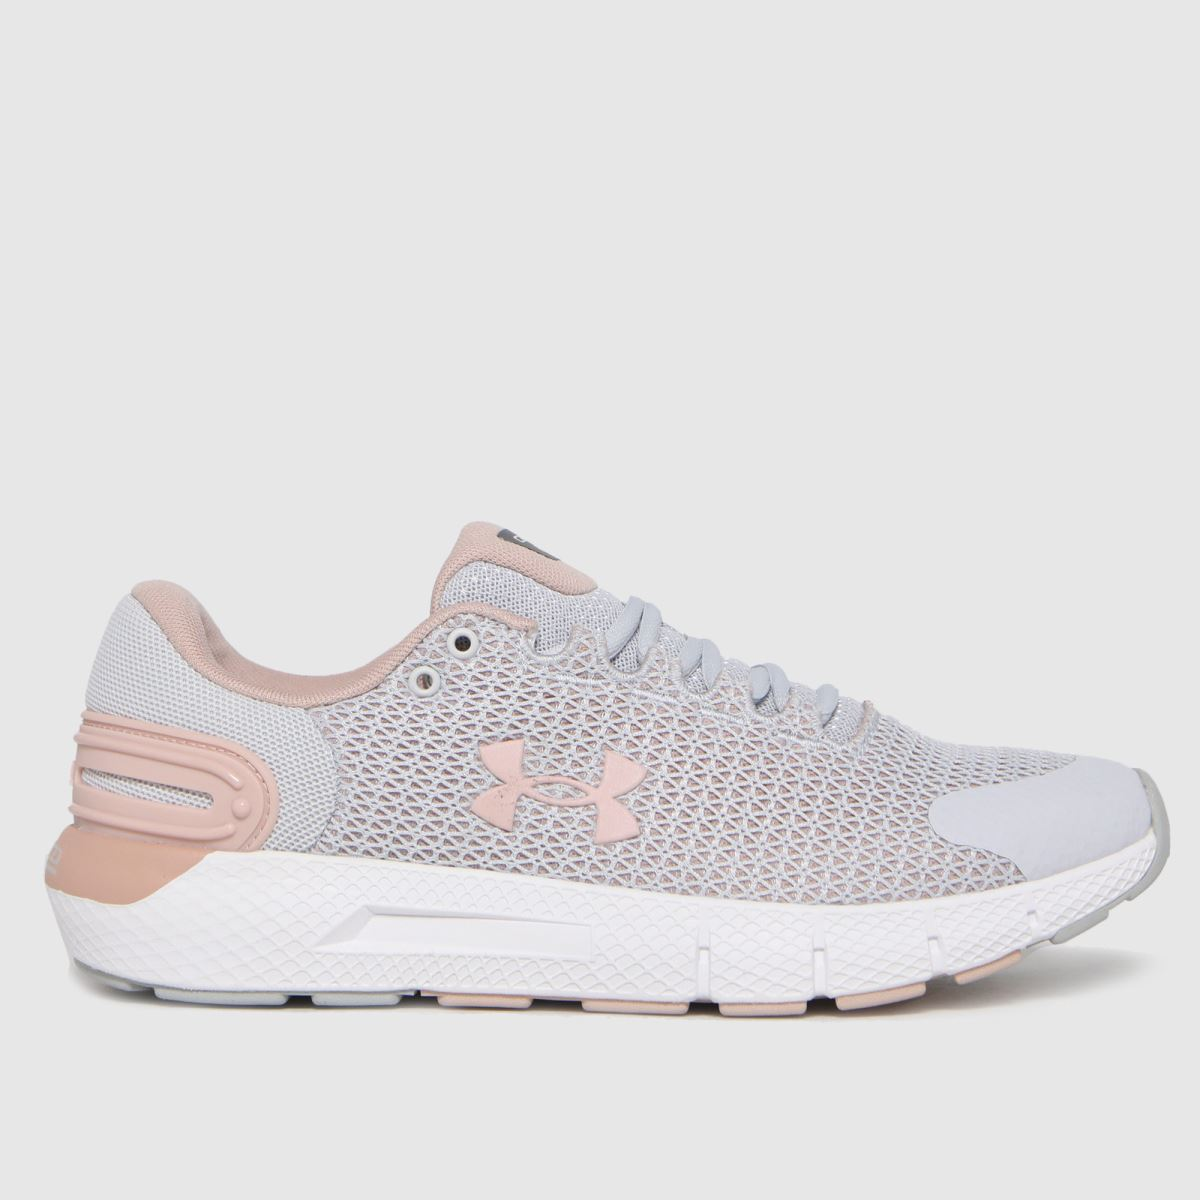 Under Armour Light Grey Charged Rogue 2.5 Trainers